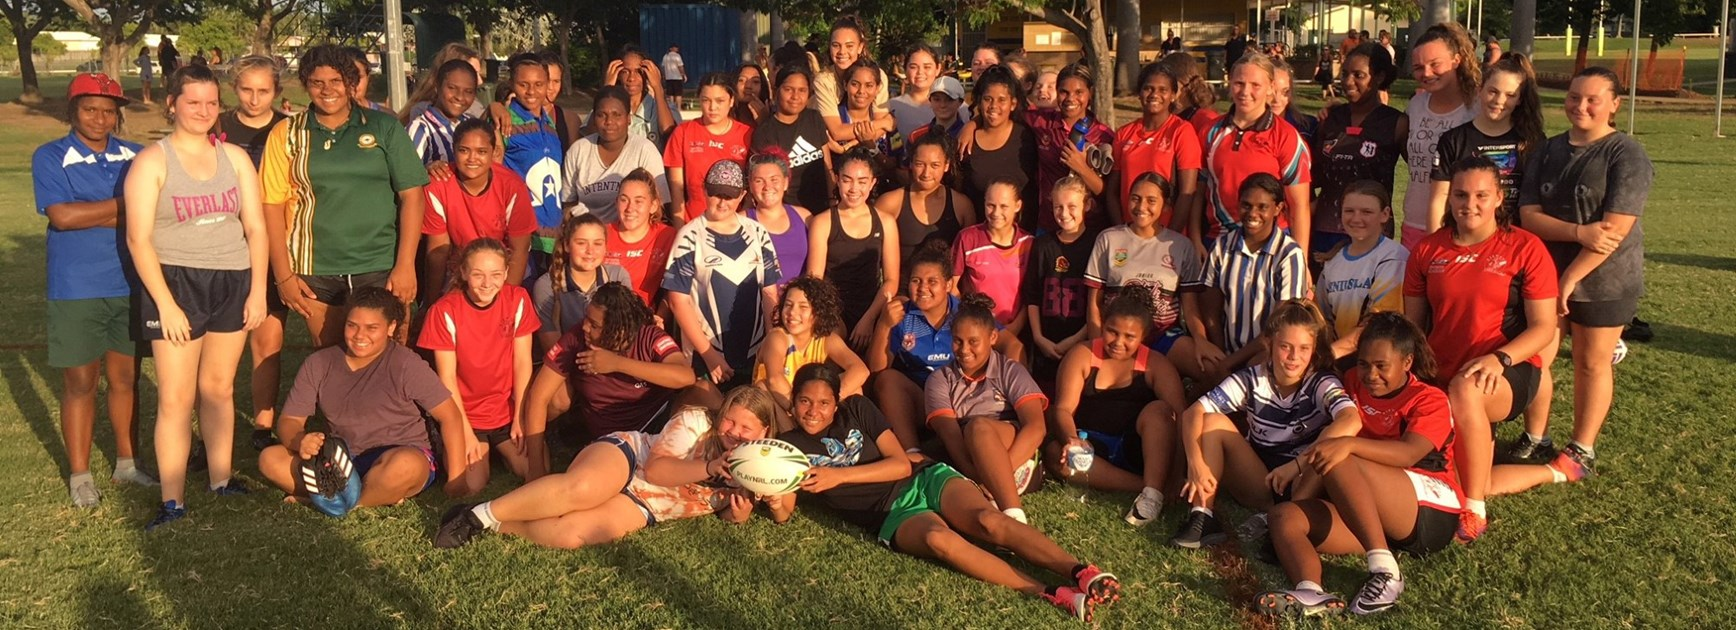 New girls competition for Townsville